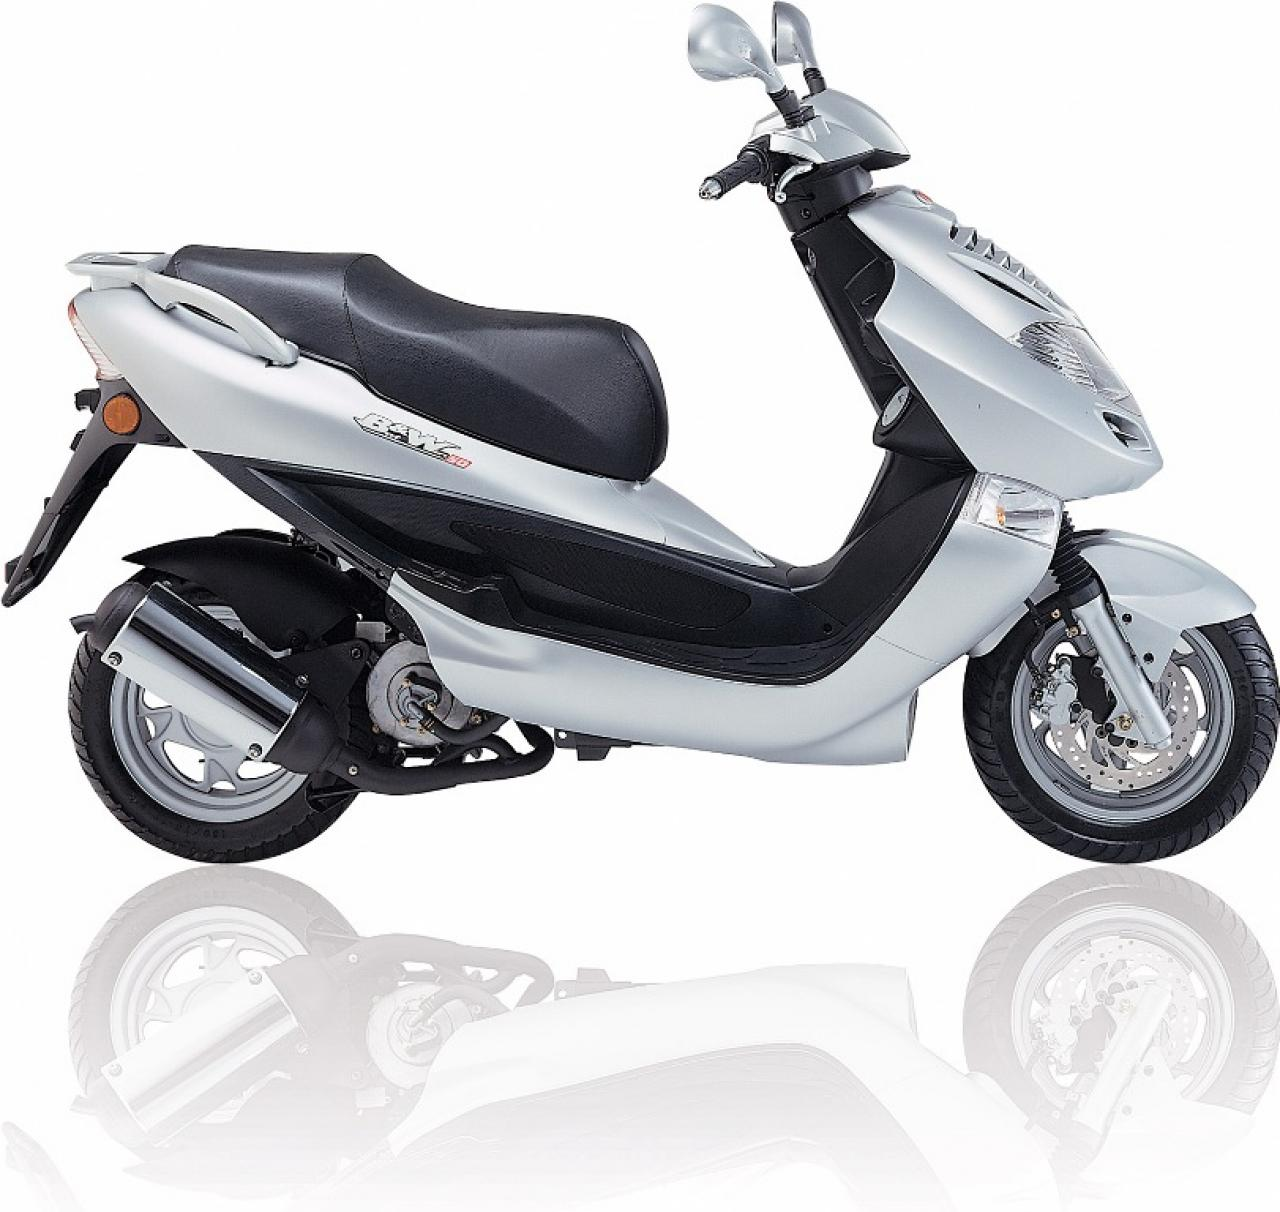 2007 Kymco Bet and Win 150 #2